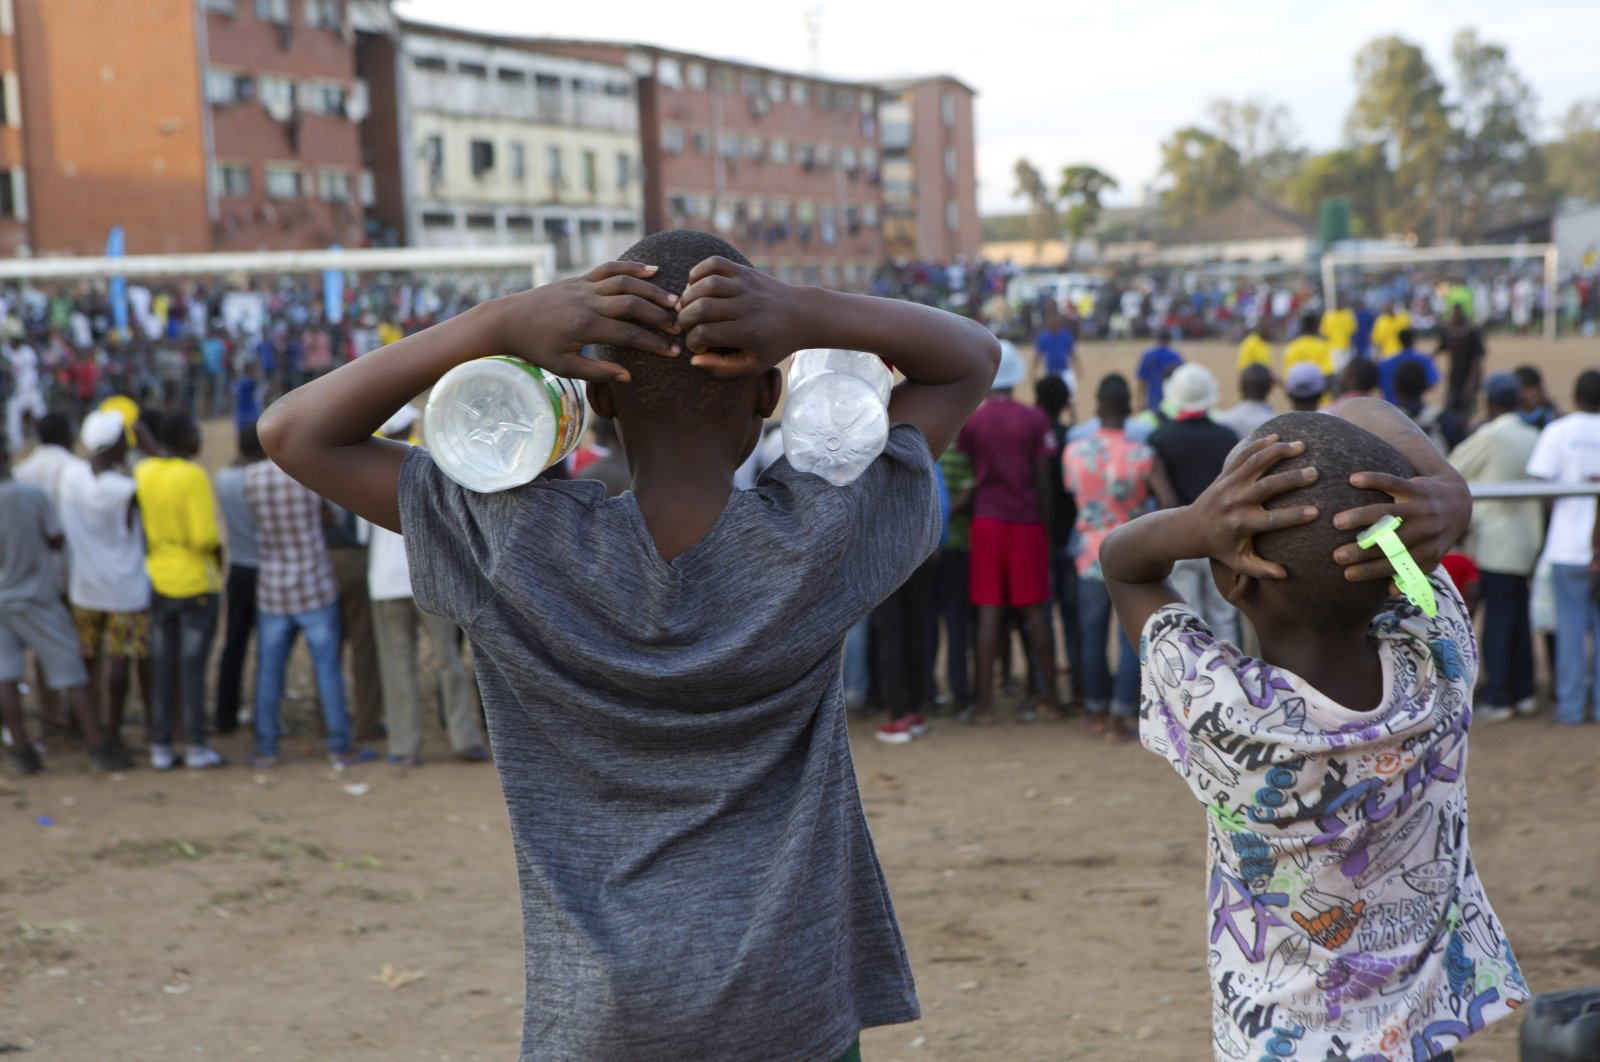 Children react while watching a soccer match in Harare, Zimbabwe, Sunday, March 15, 2020. (AP Photo)